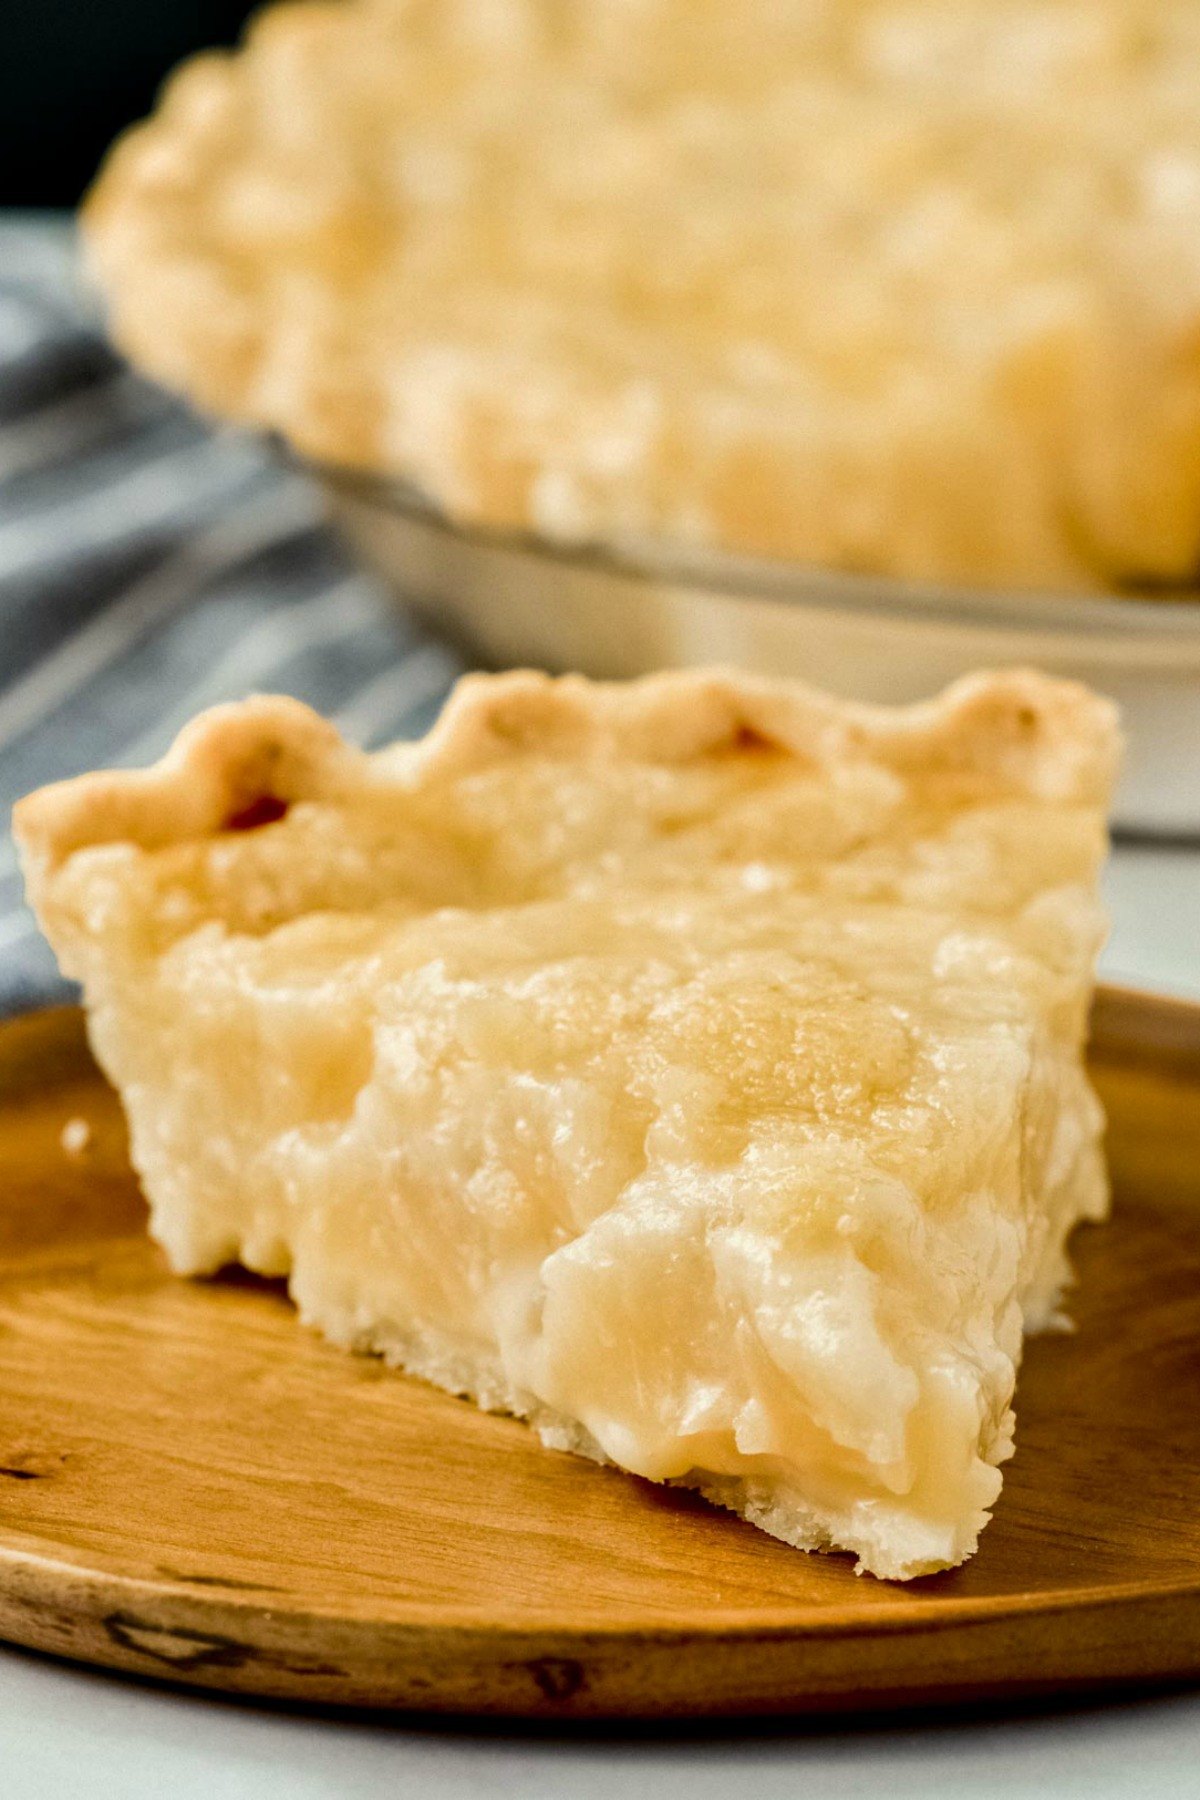 A slice of of pear pie with streusel topping. Gluten-free and dairy-free.